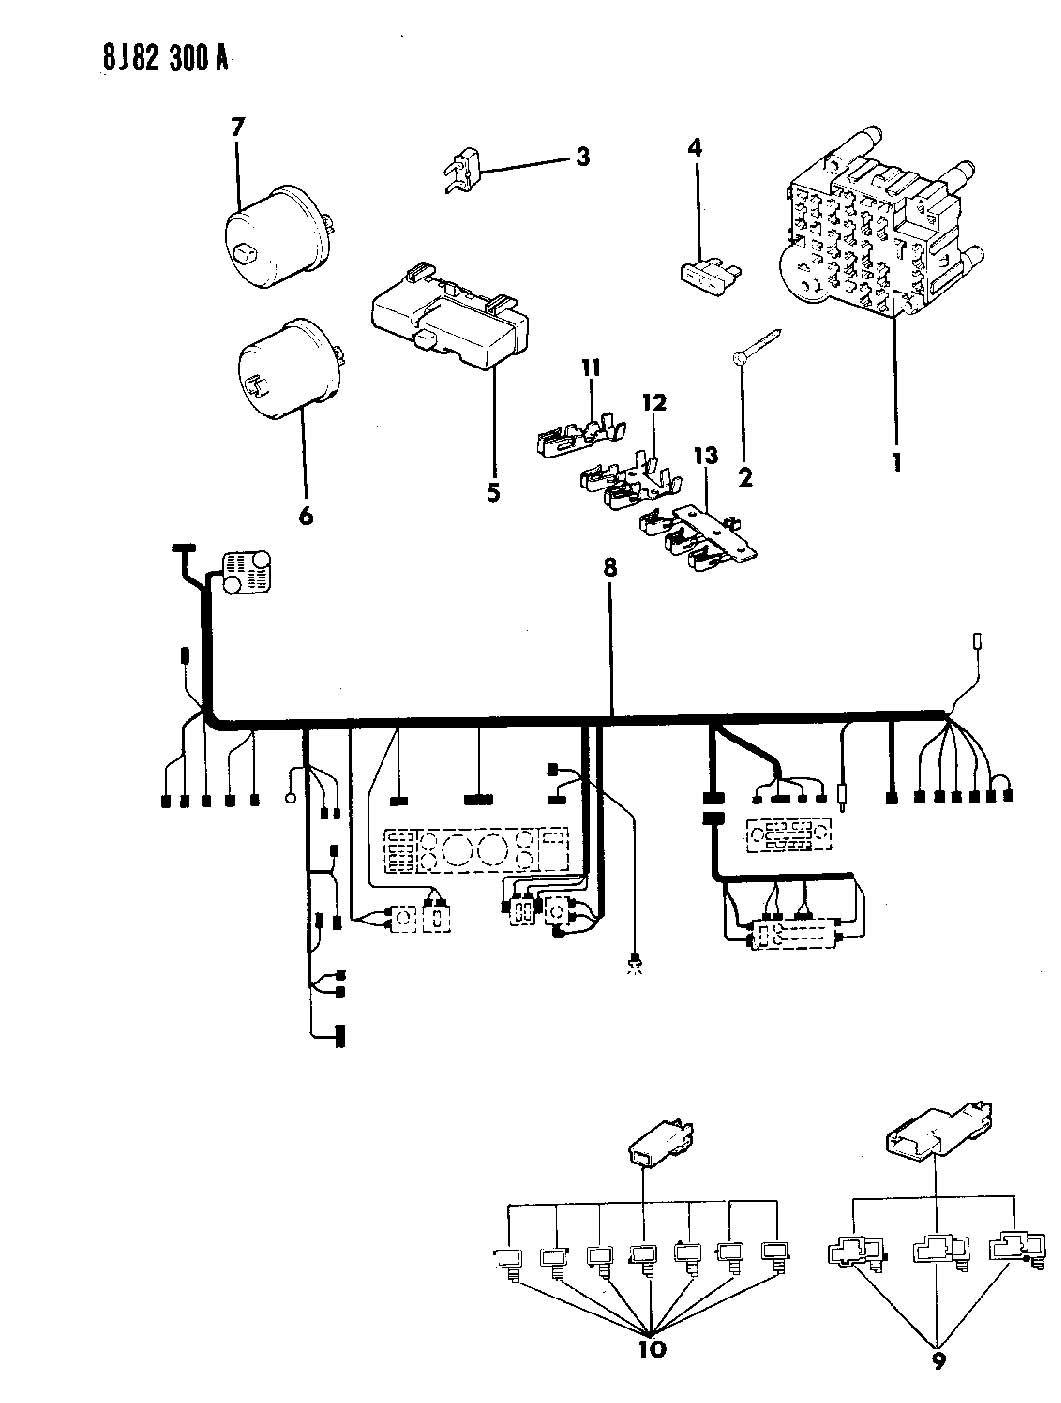 94 Jeep Wrangler Wiring Diagram Lights Trusted Chrysler Parts Diagrams 1990 Harness Rh Dafpods Co 1987 1989